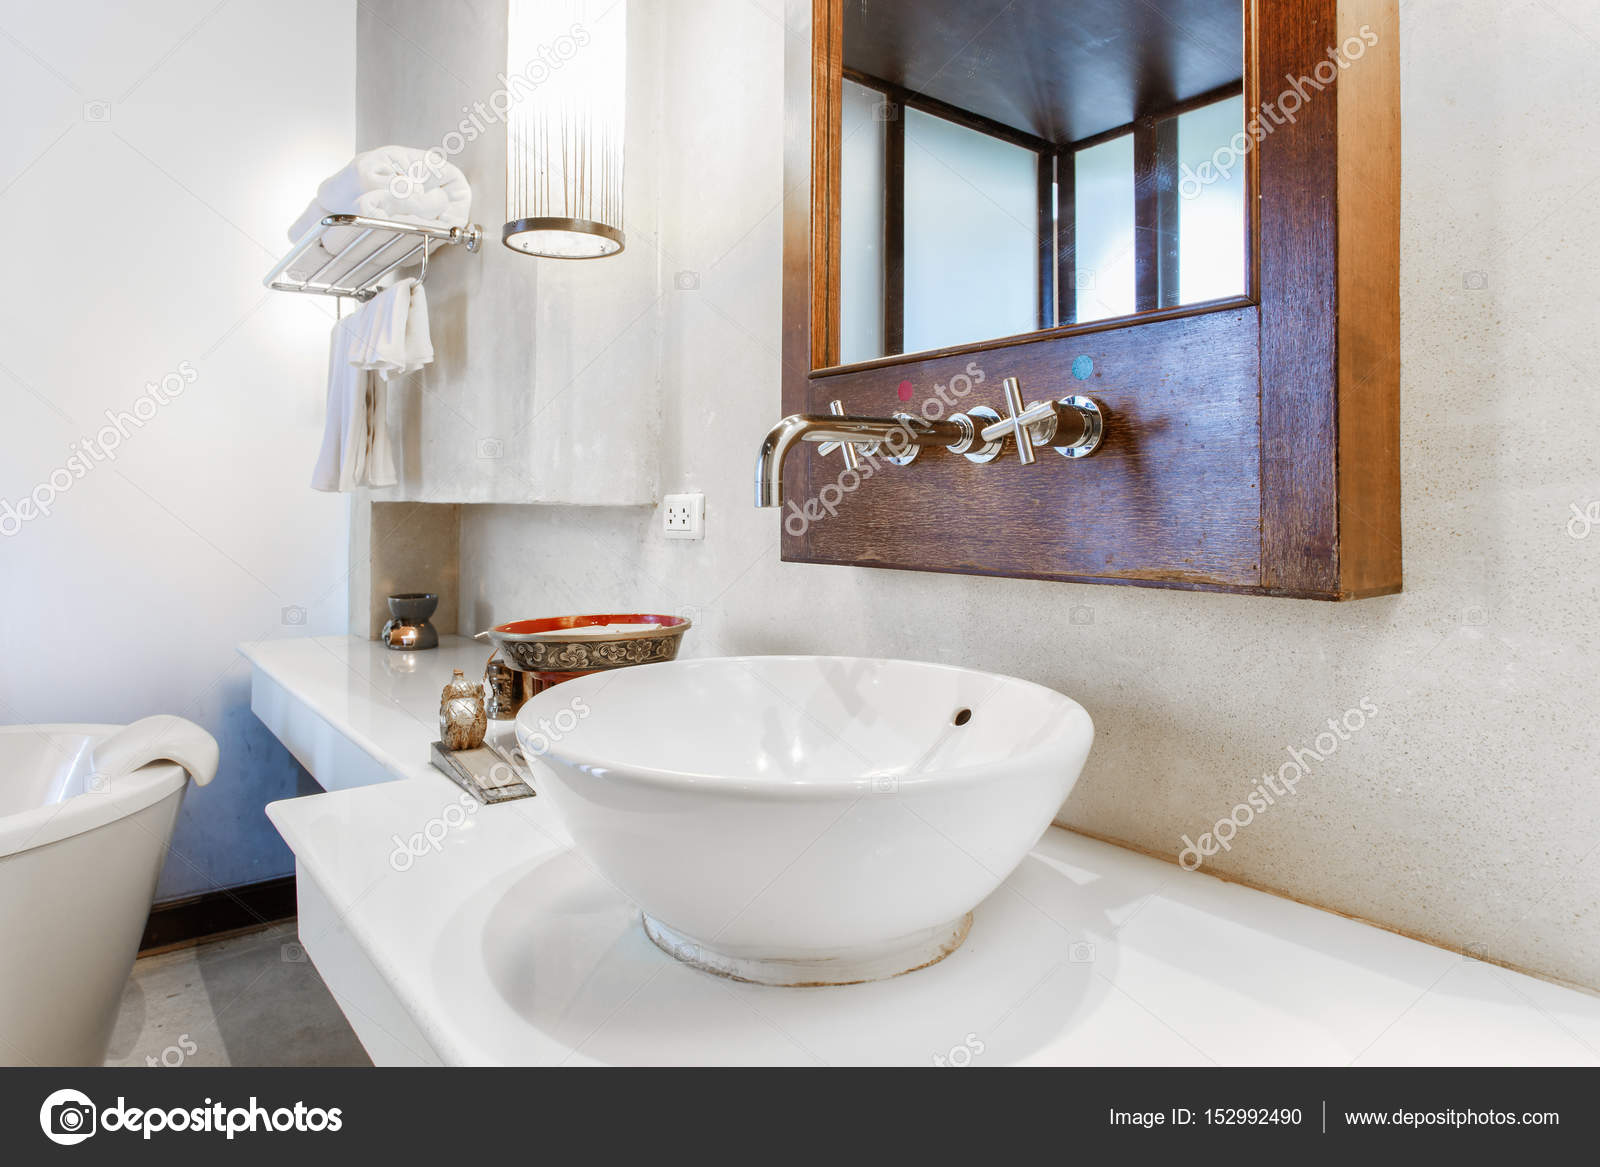 Modern Marble Wash Hand Basin In A Restroom Or Hotel Bathroom With  Toiletries And Fresh Clean